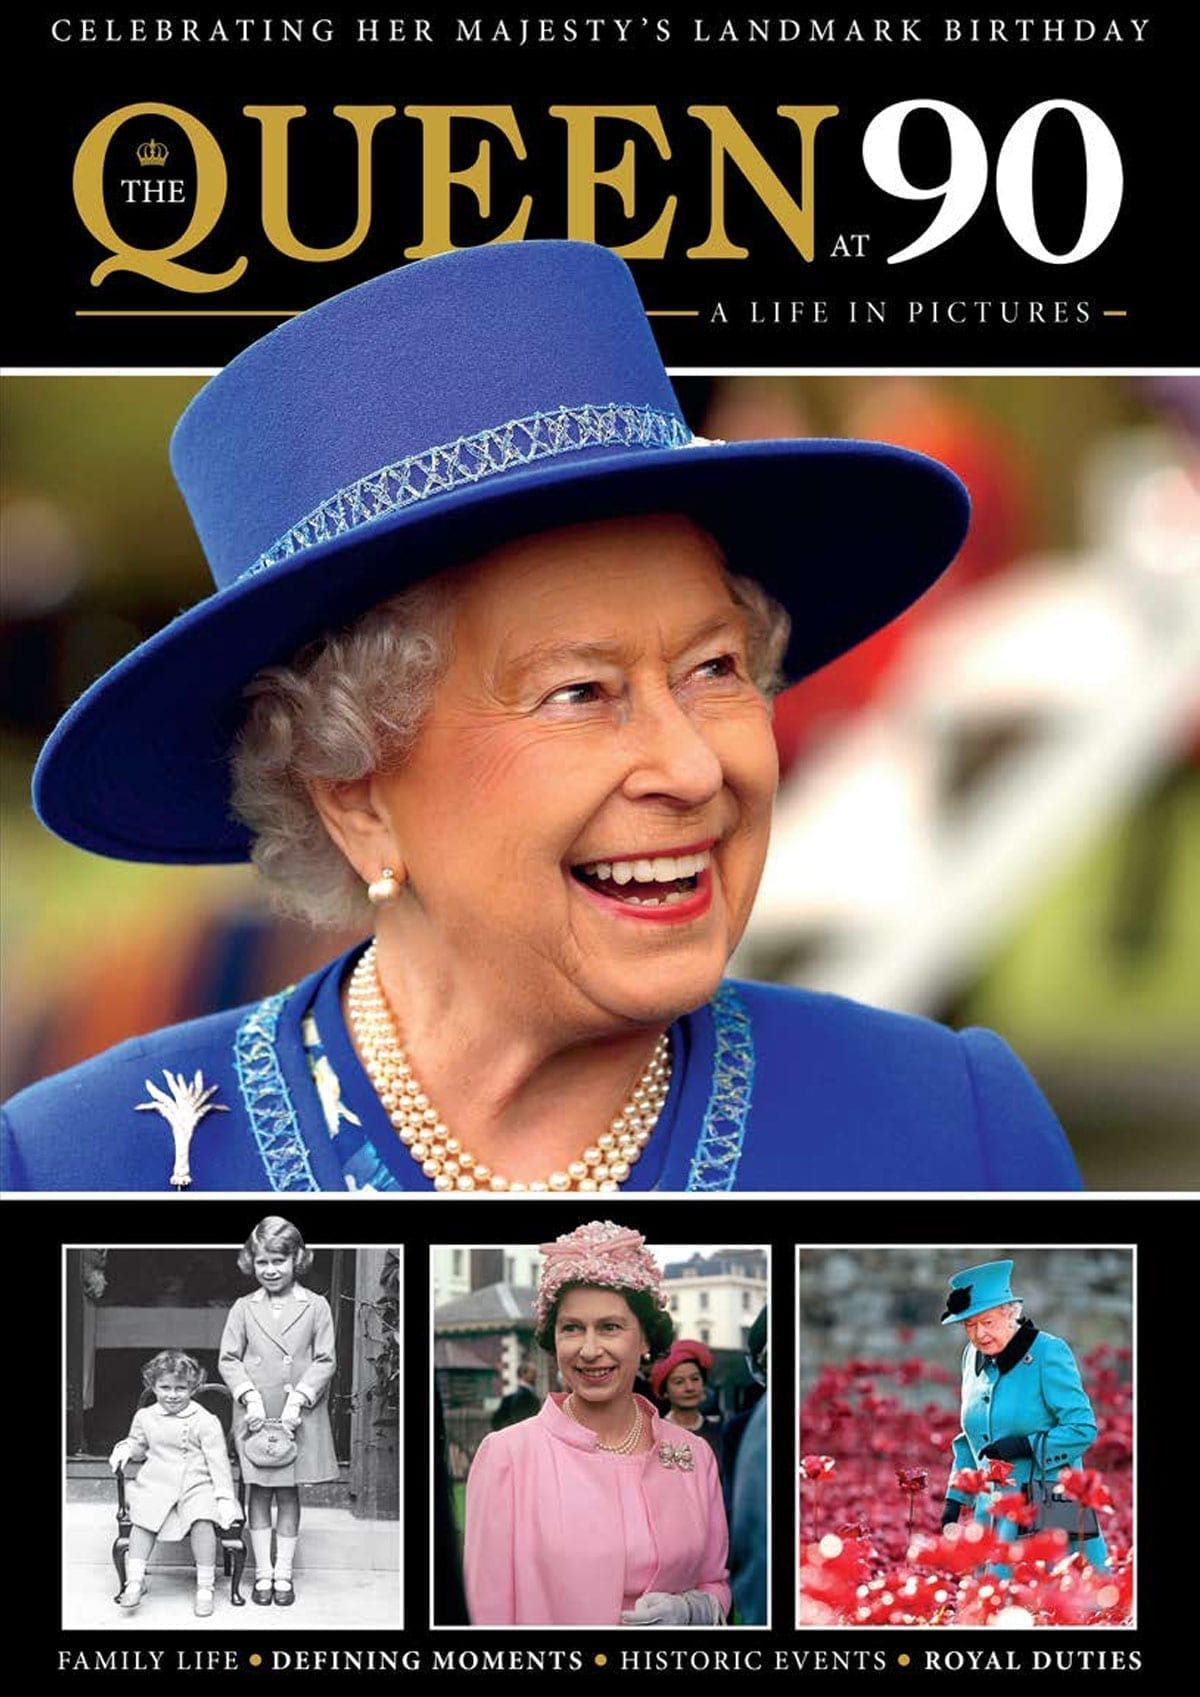 The Queen at 90: A Life in Pictures